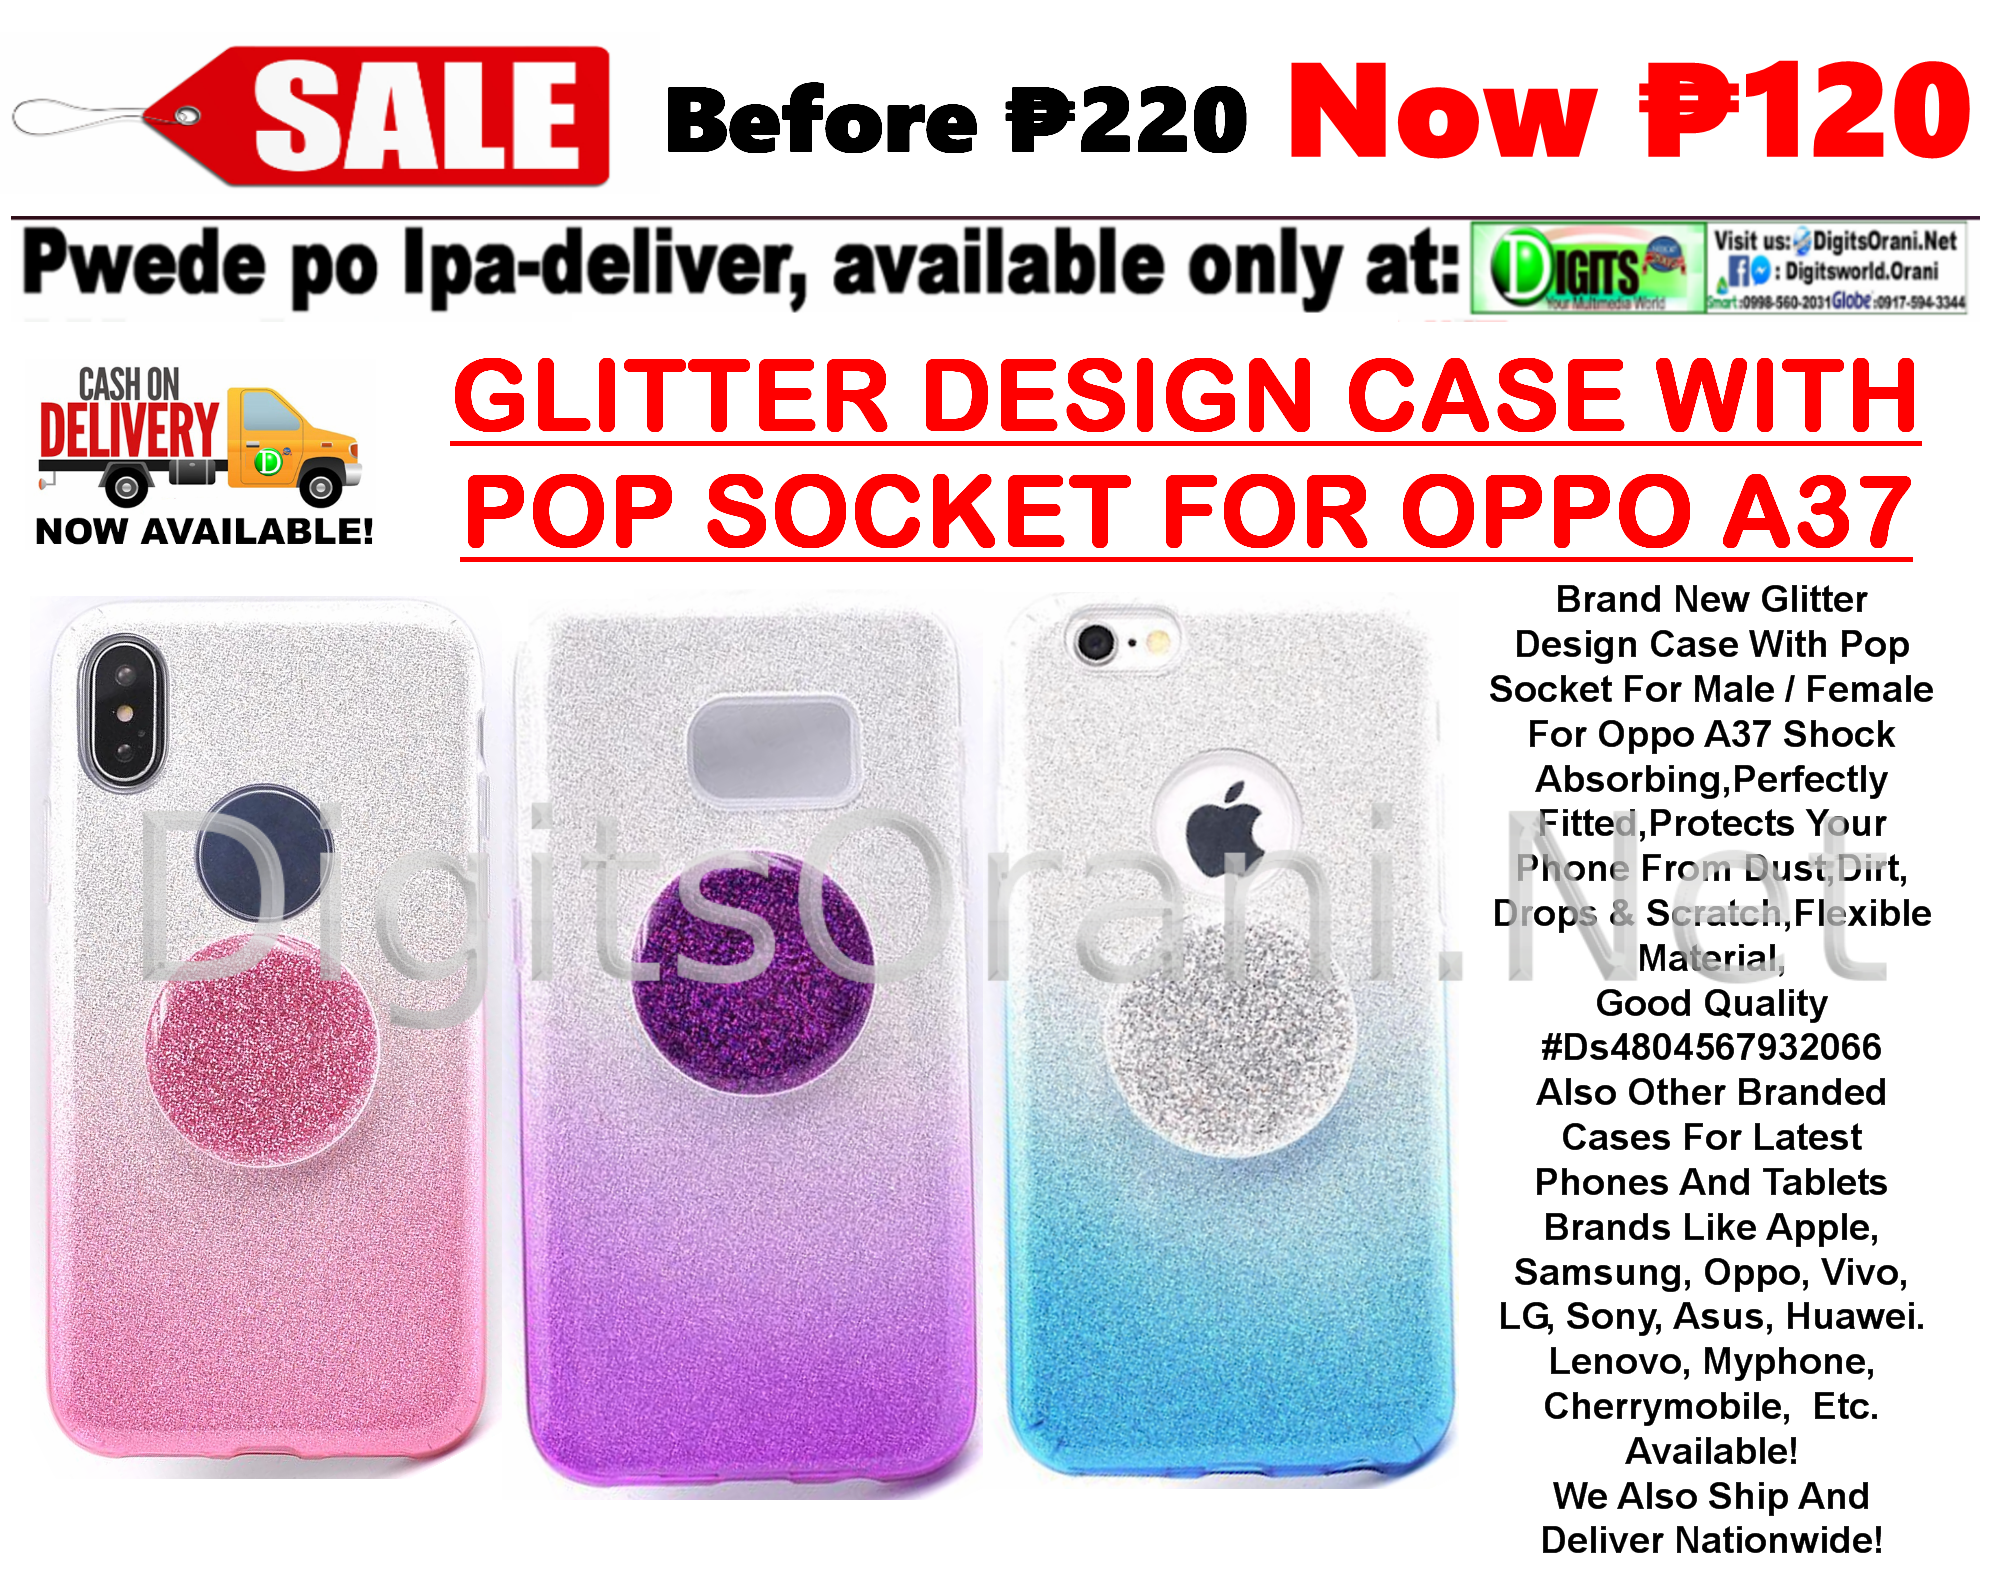 Glitter Design Case With Pop Socket For Male / Female For Oppo A37 Shock  Absorbing,Perfectly Fitted,Protects Your Phone From Dust,Dirt,Drops &